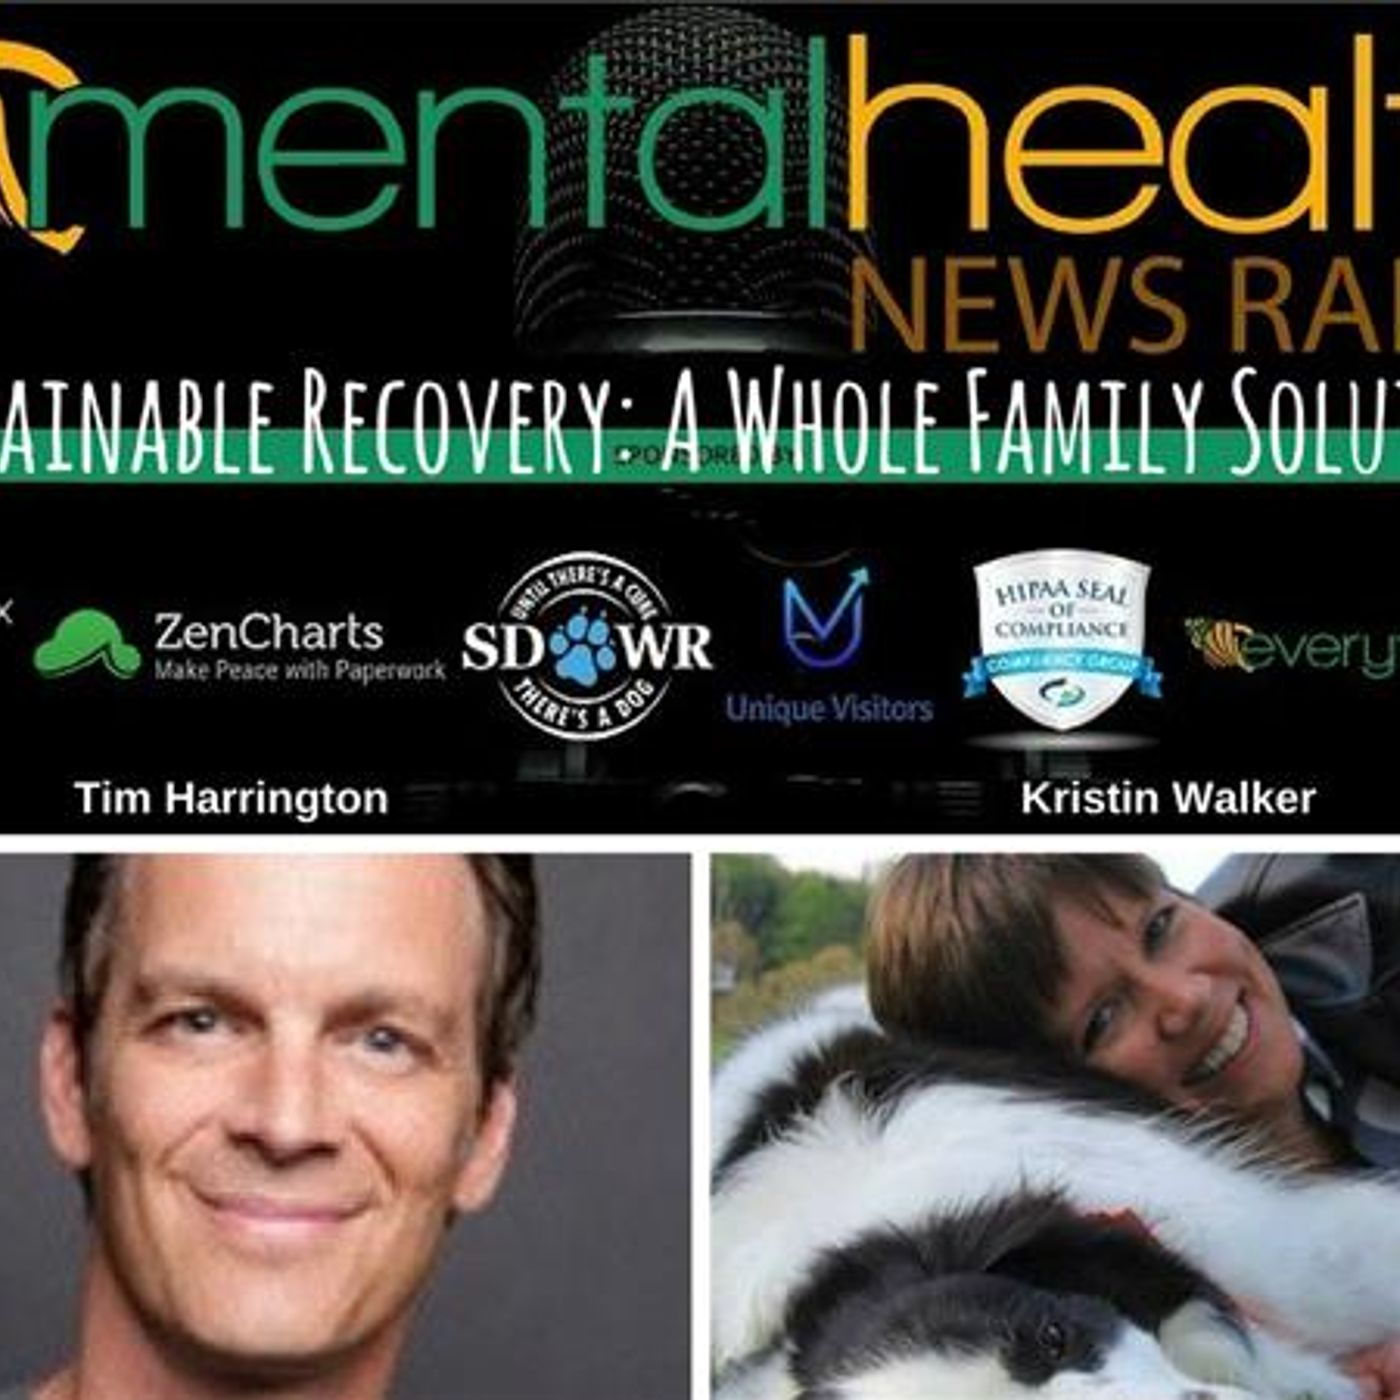 Mental Health News Radio - Sustainable Recovery: A Whole Family Solution with Tim Harrington